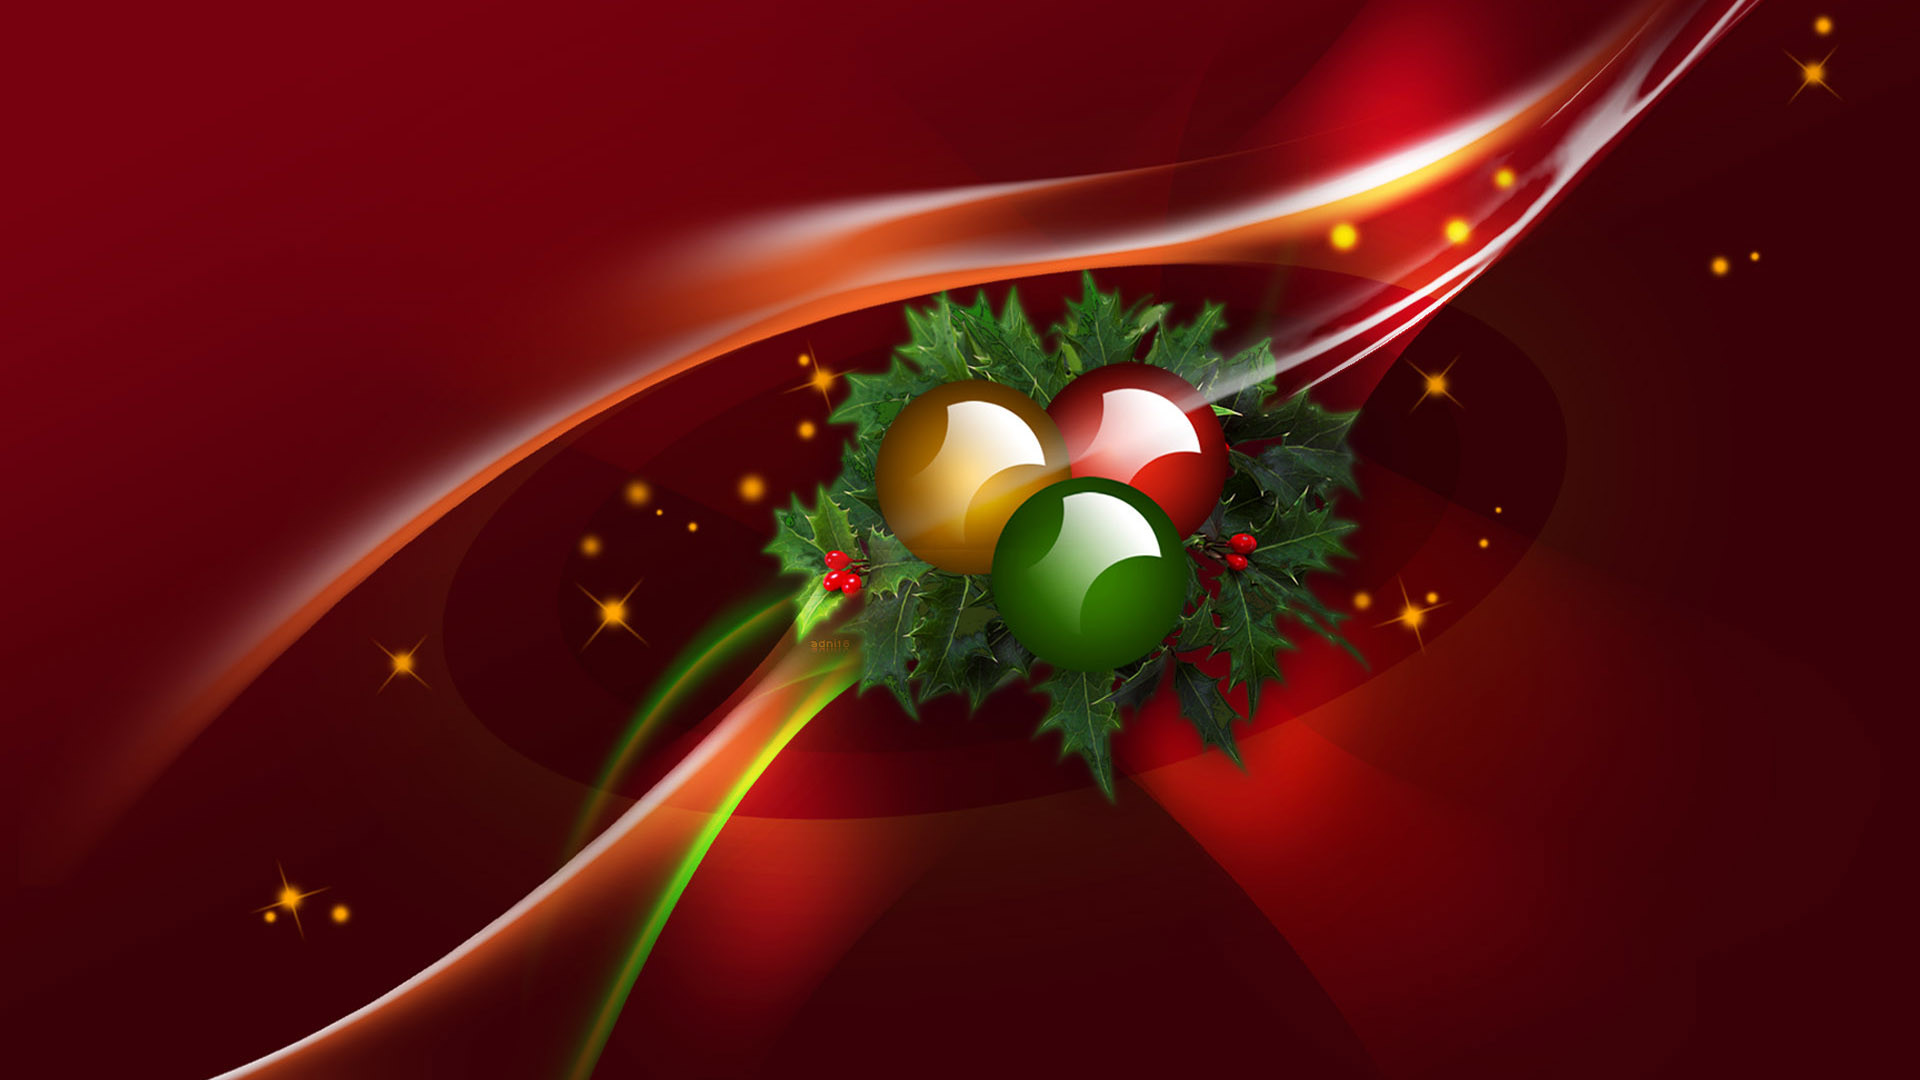 1920x1080 Christmas Backgrounds for Smart Phone and PC Desktop.